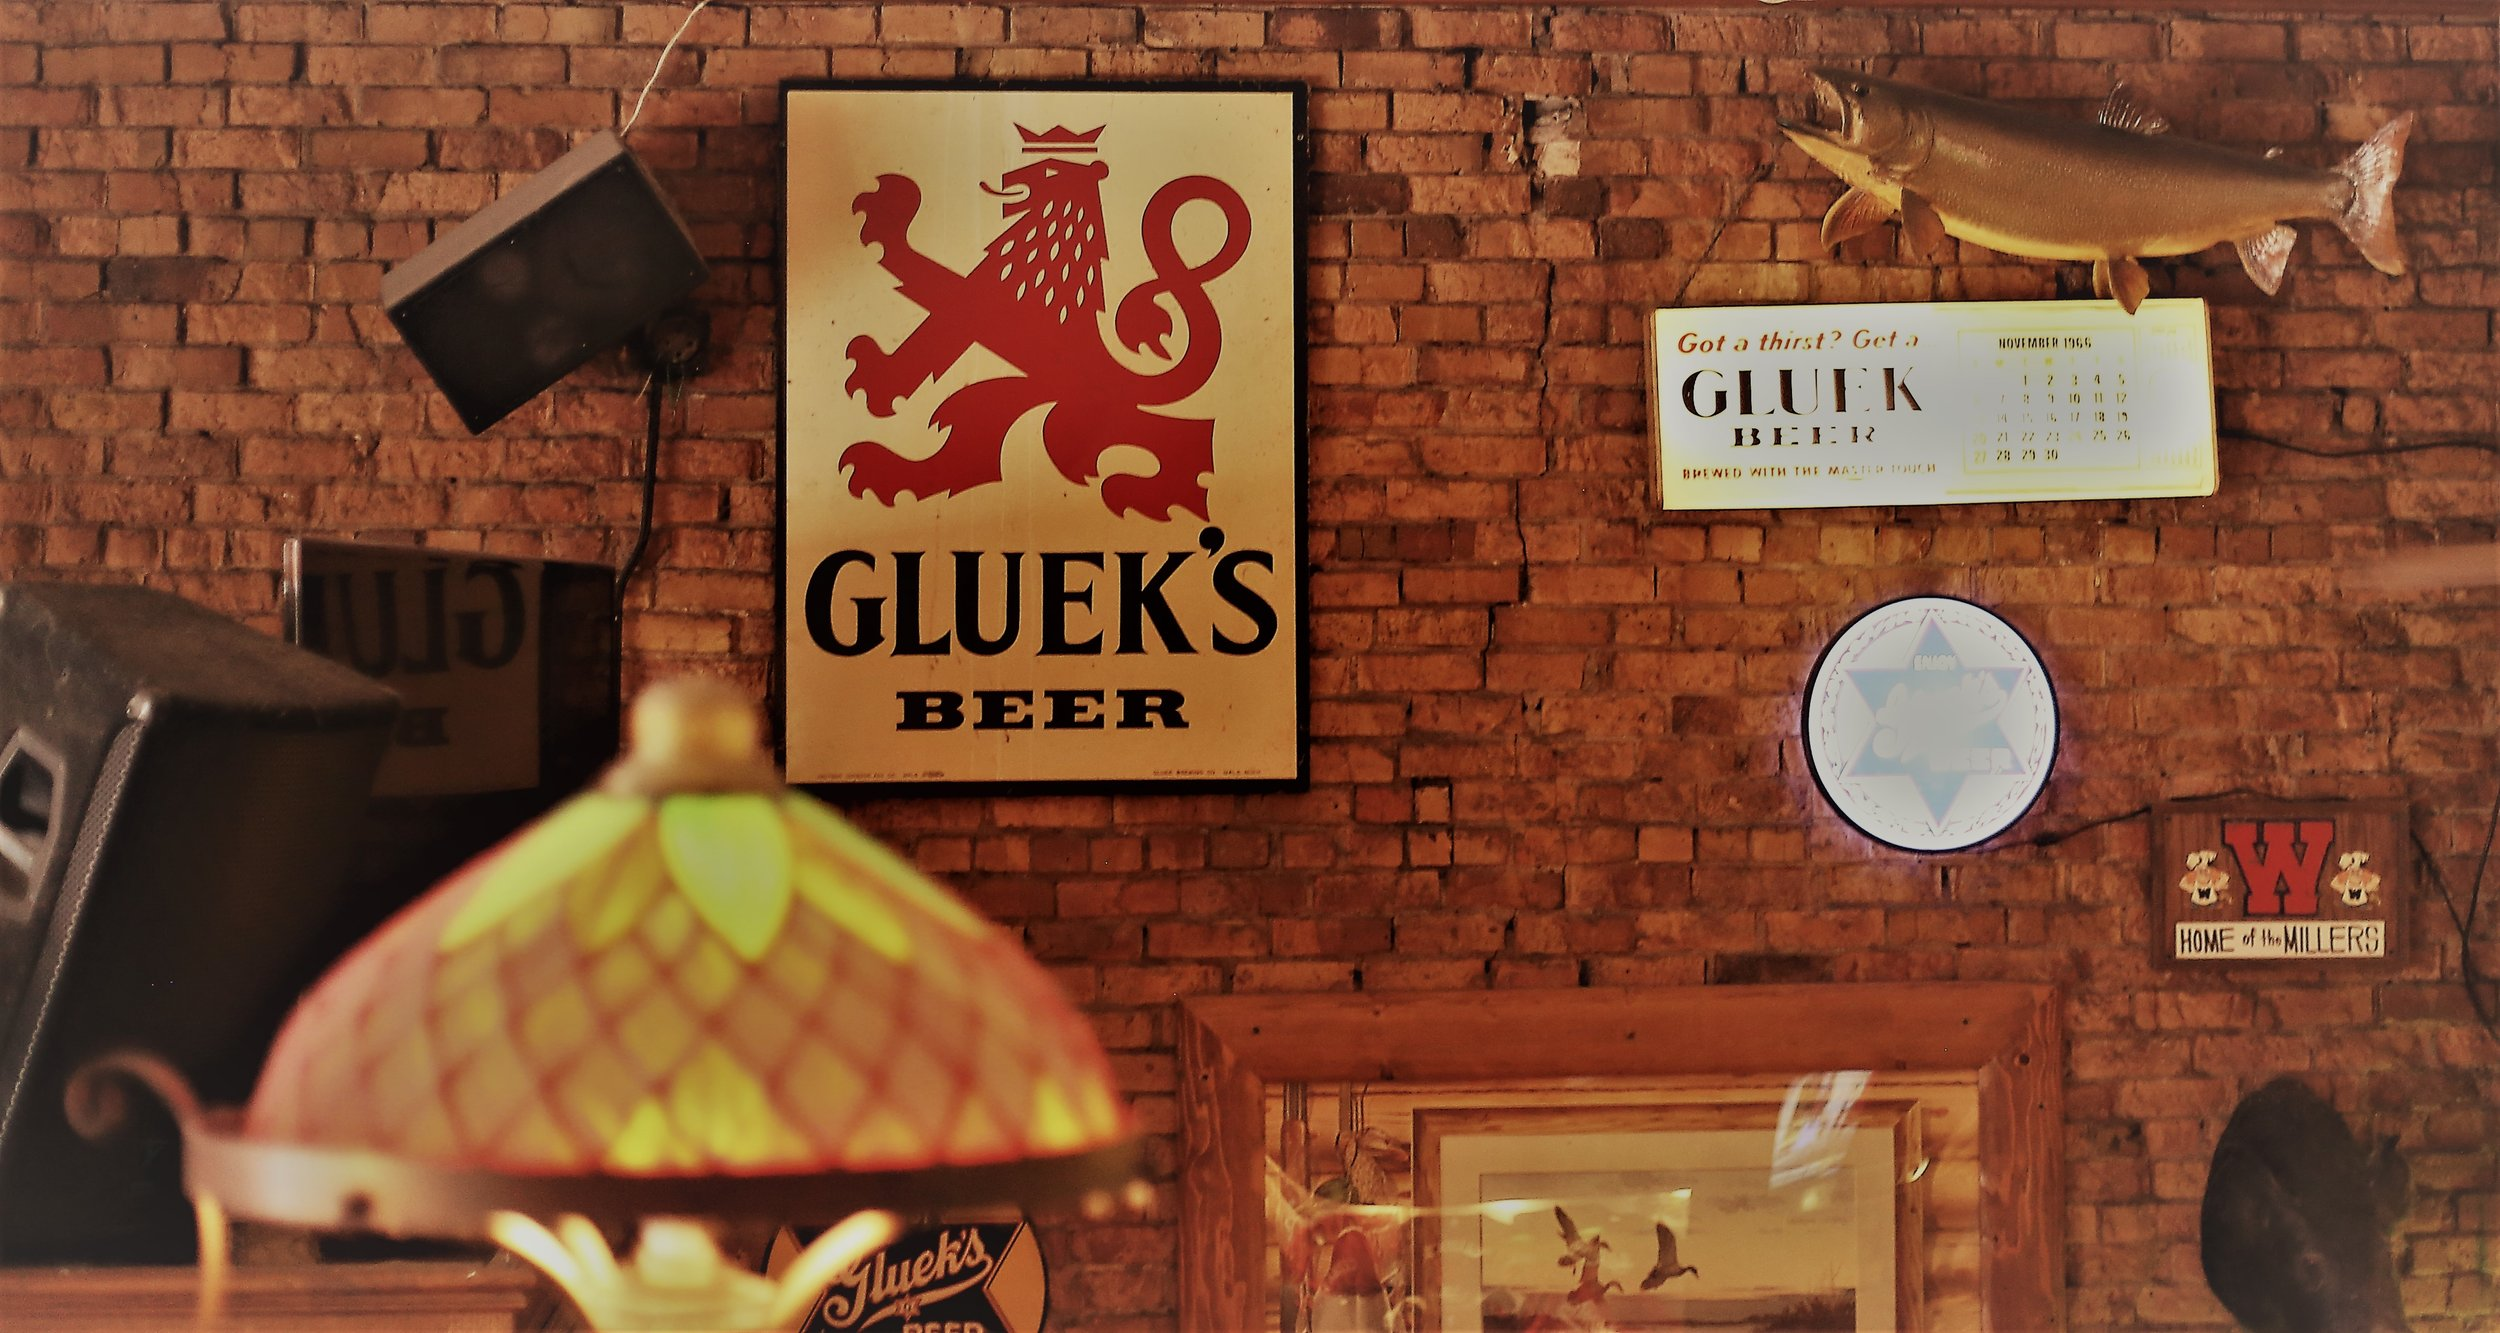 Gluek's Bar & Restaurant - Built in 1902, Gluek's is the oldest running bar in downtown. Learn the story of the building and the brewery through beautiful stained glass, original photos dating back to the early 1900s and Gluek collectibles from beer cans to vintage signs. They offer an extensive menu, live music and more!